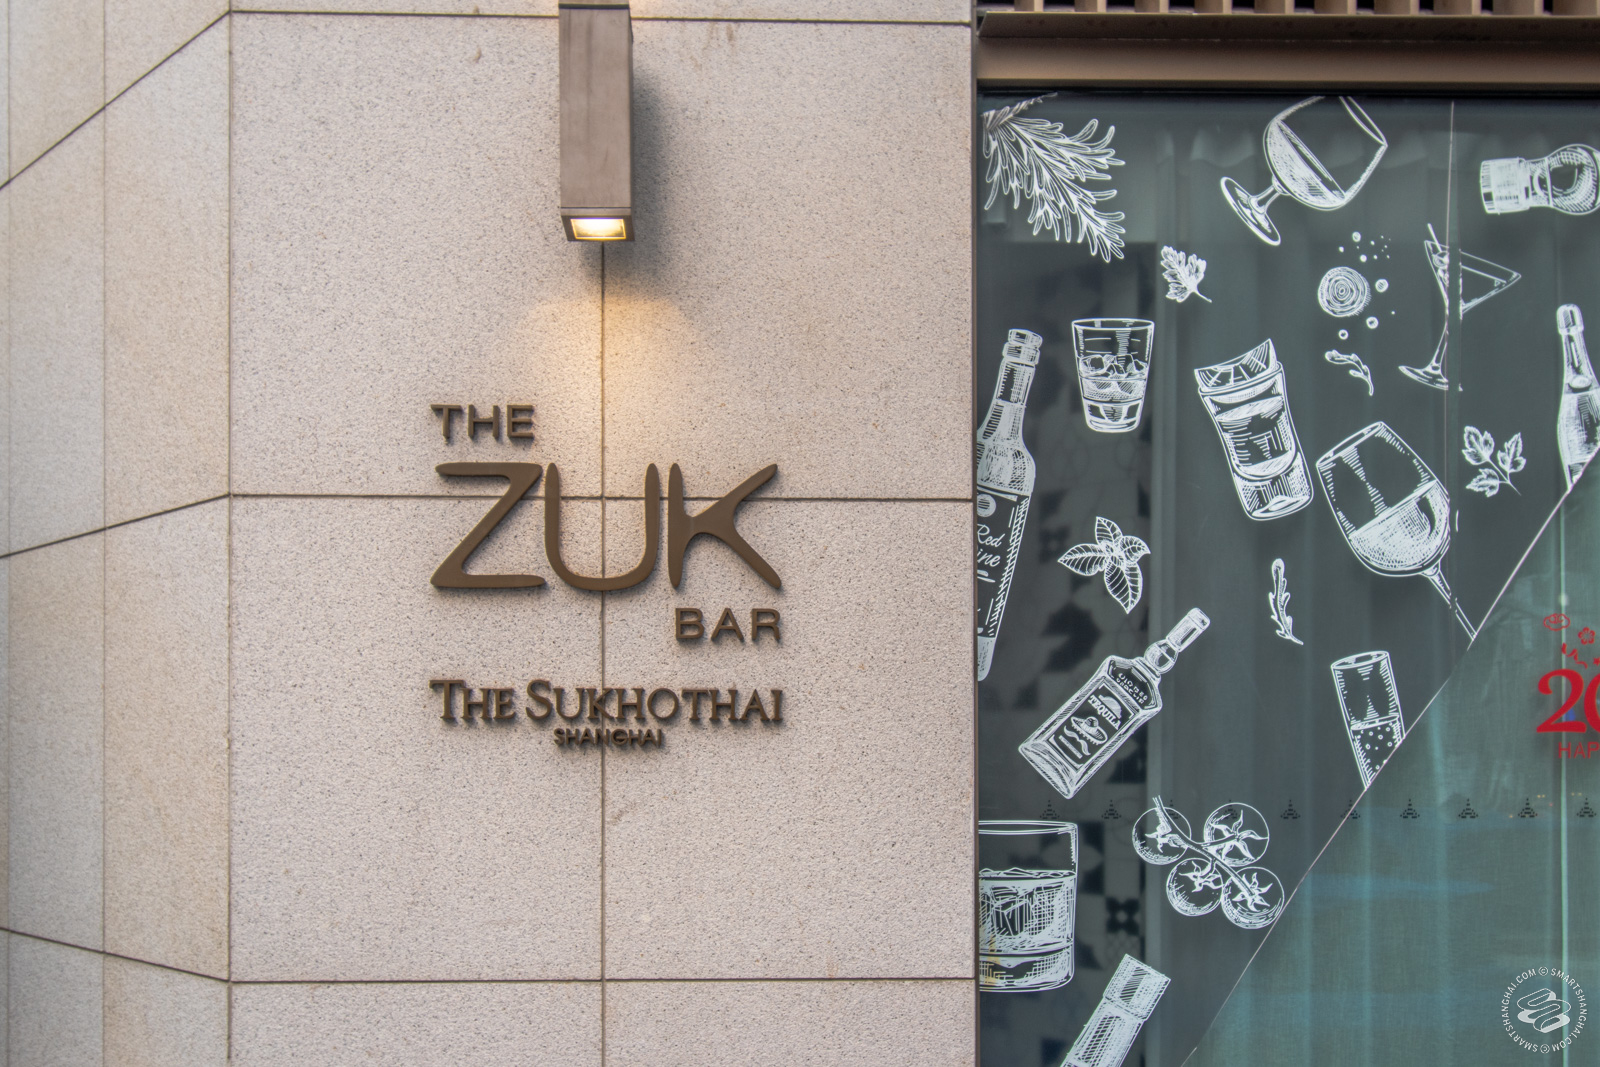 The ZUK Bar Shanghai